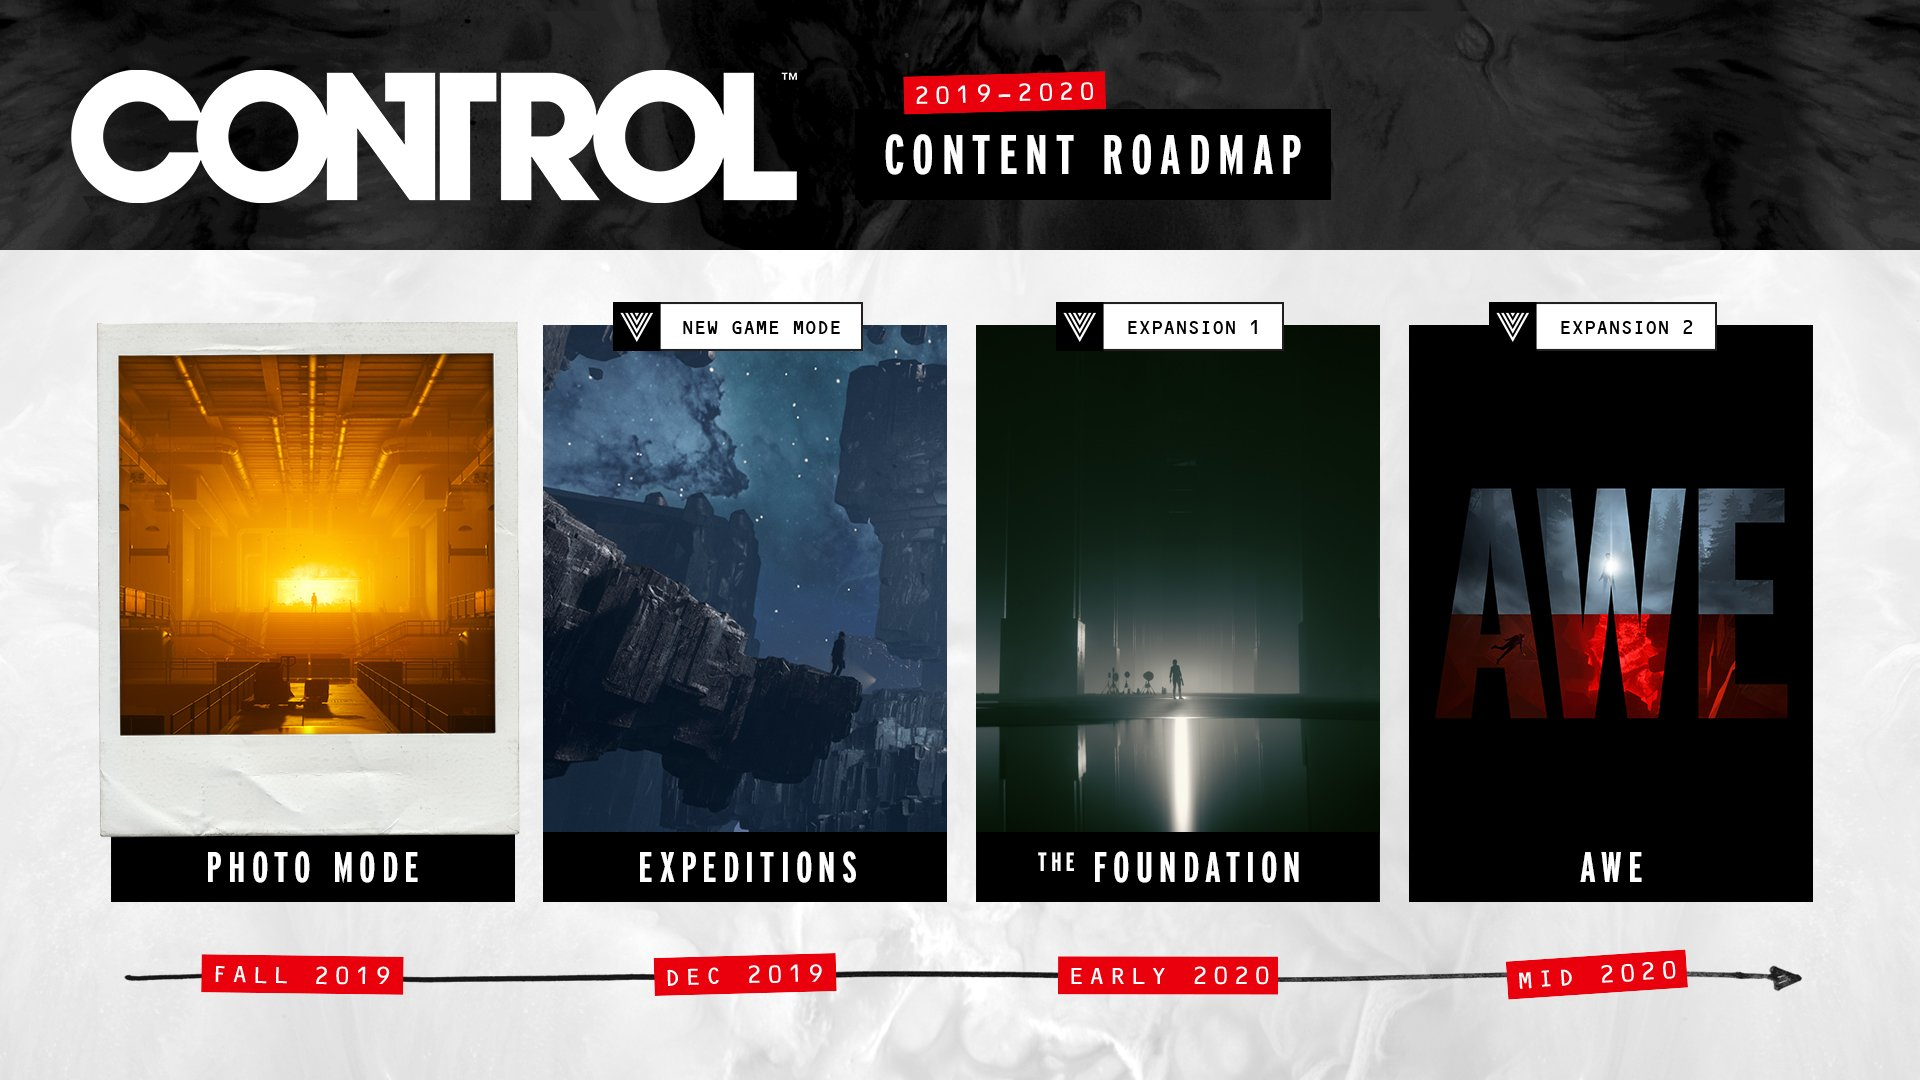 Control content DLC roadmap revealed Alan Wake